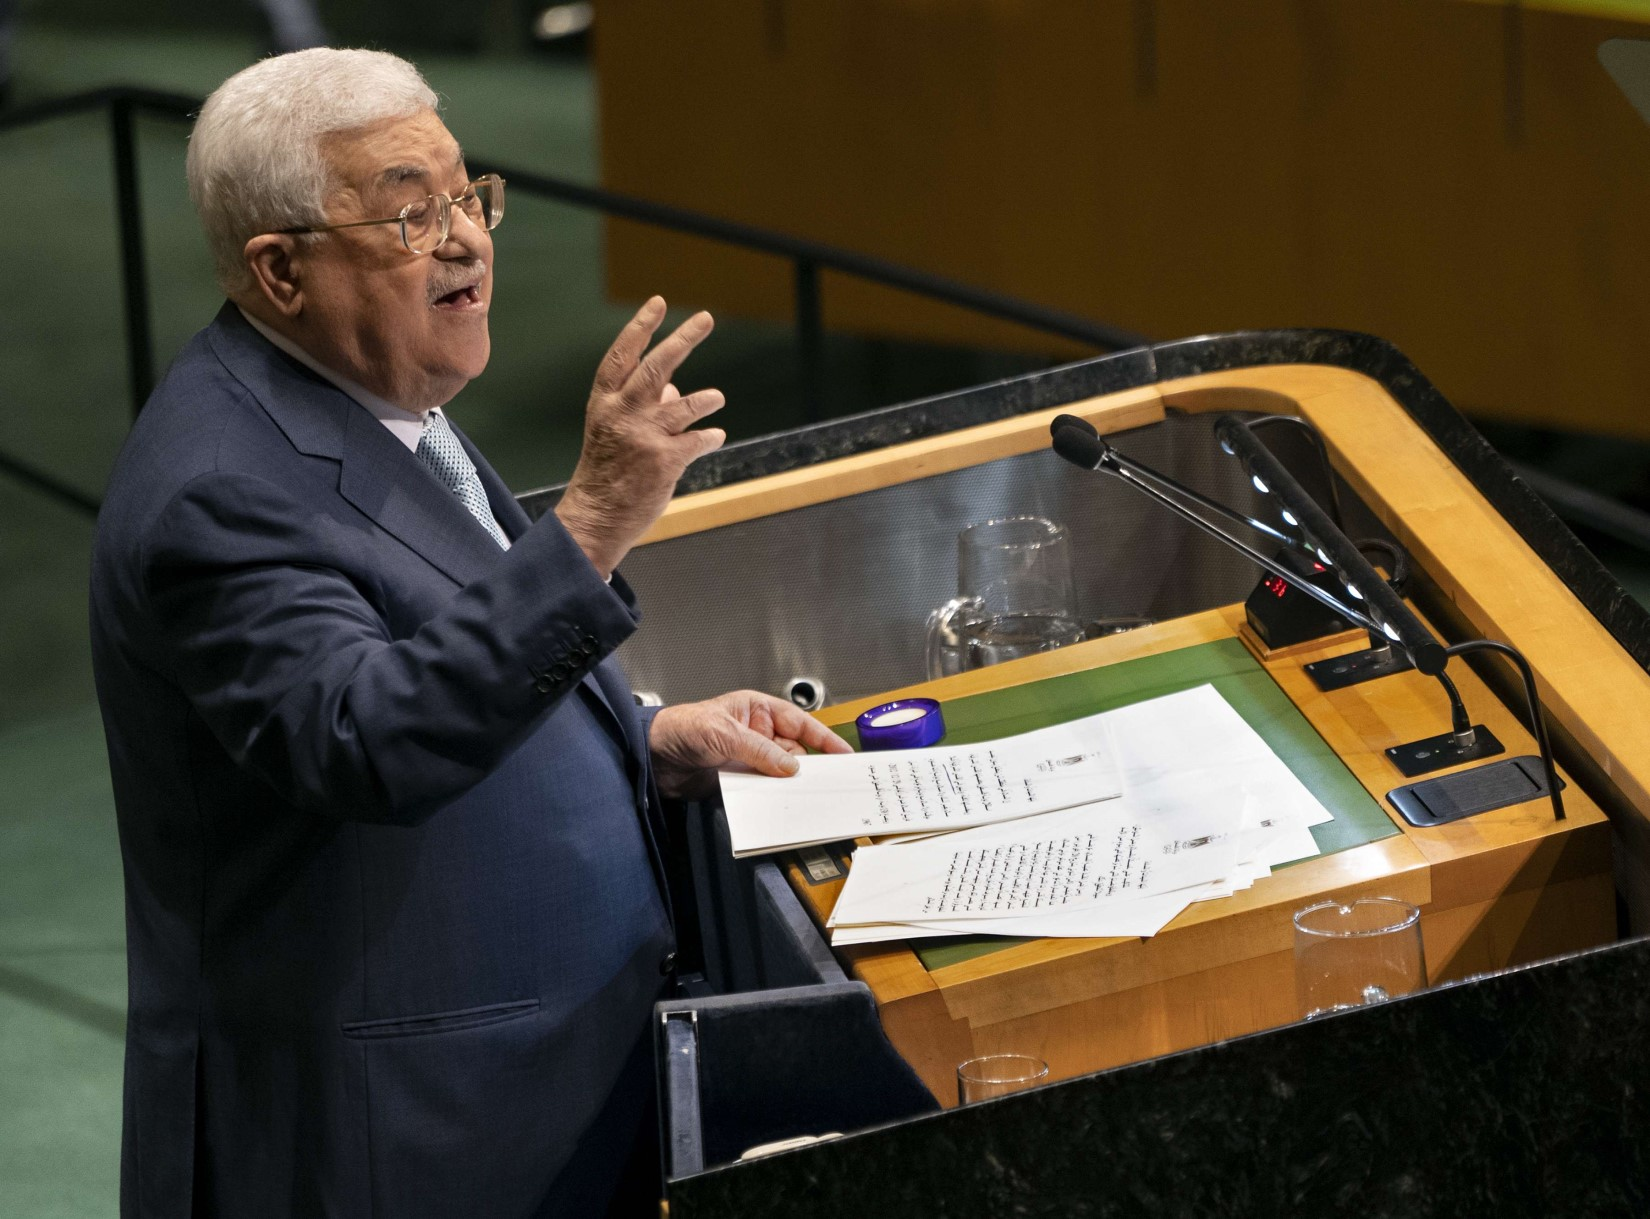 Palestinian President Mahmoud Abbas addresses the 73rd session of the United Nations General Assembly, at UN headquarters, Thursday, September 27, 2018. (AP)